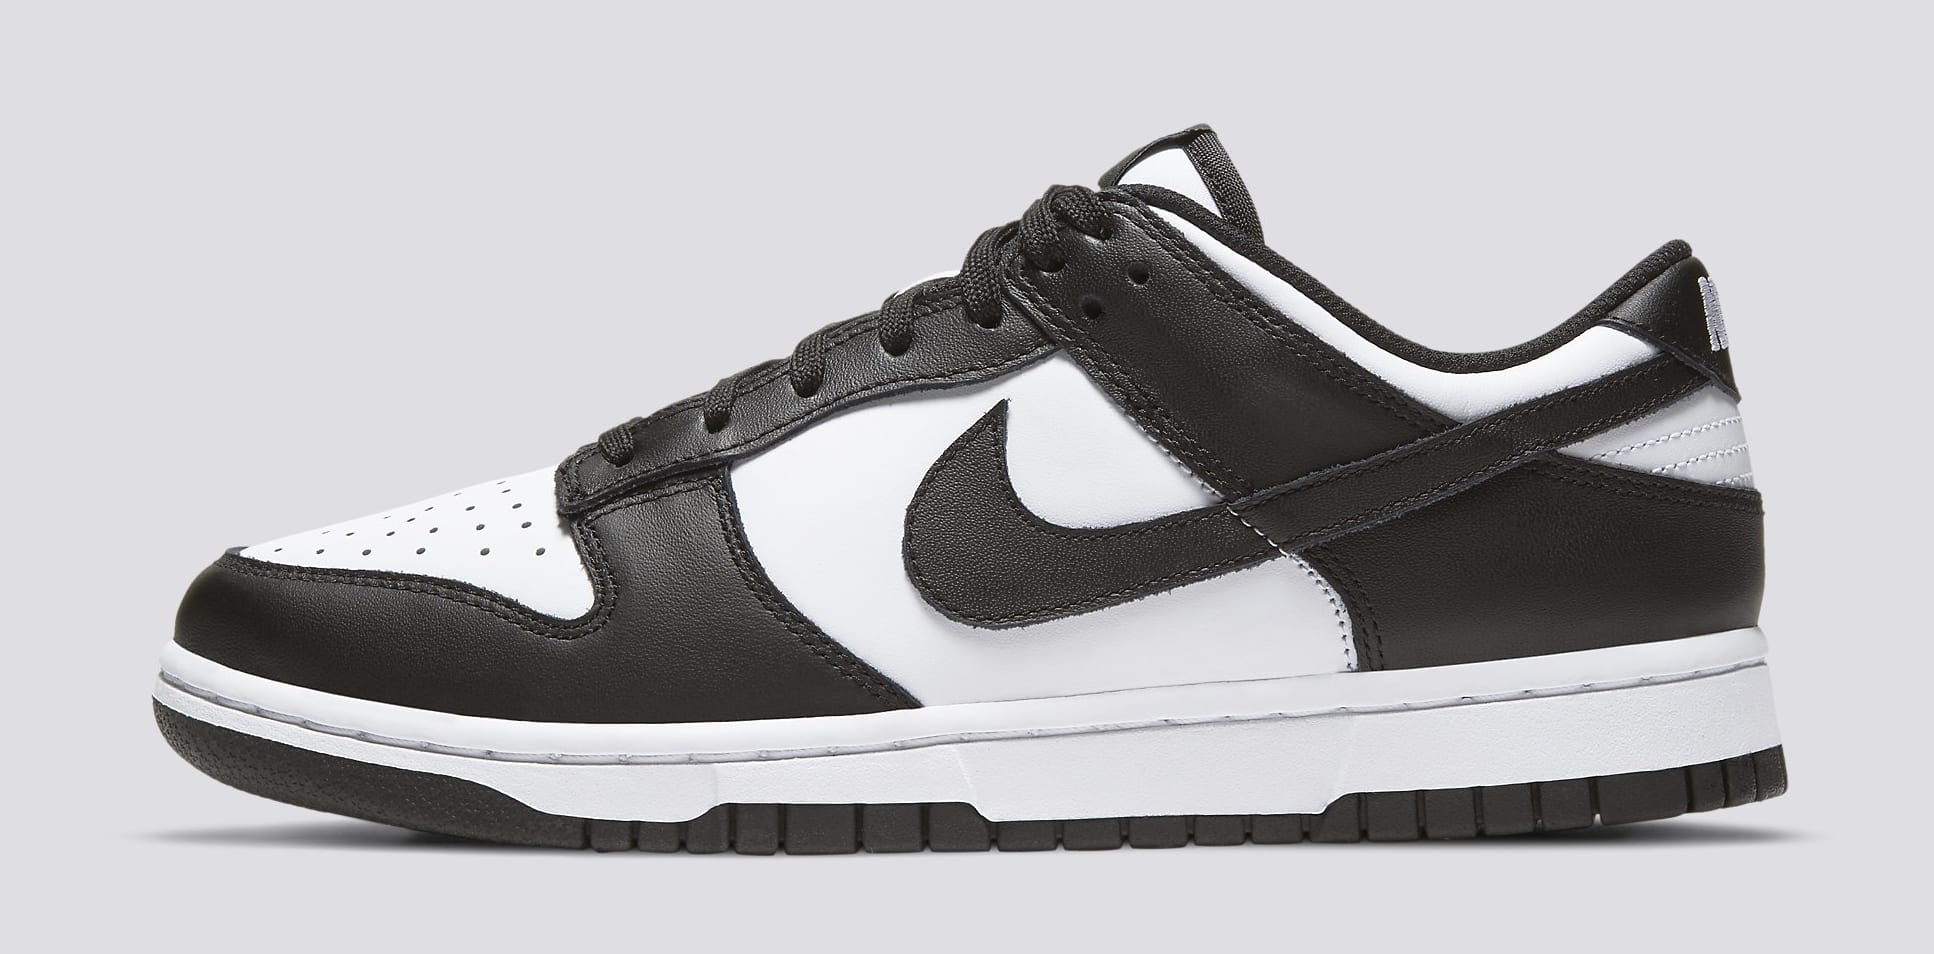 Nike Dunk Low 'Black/White' DD1503-101 Lateral